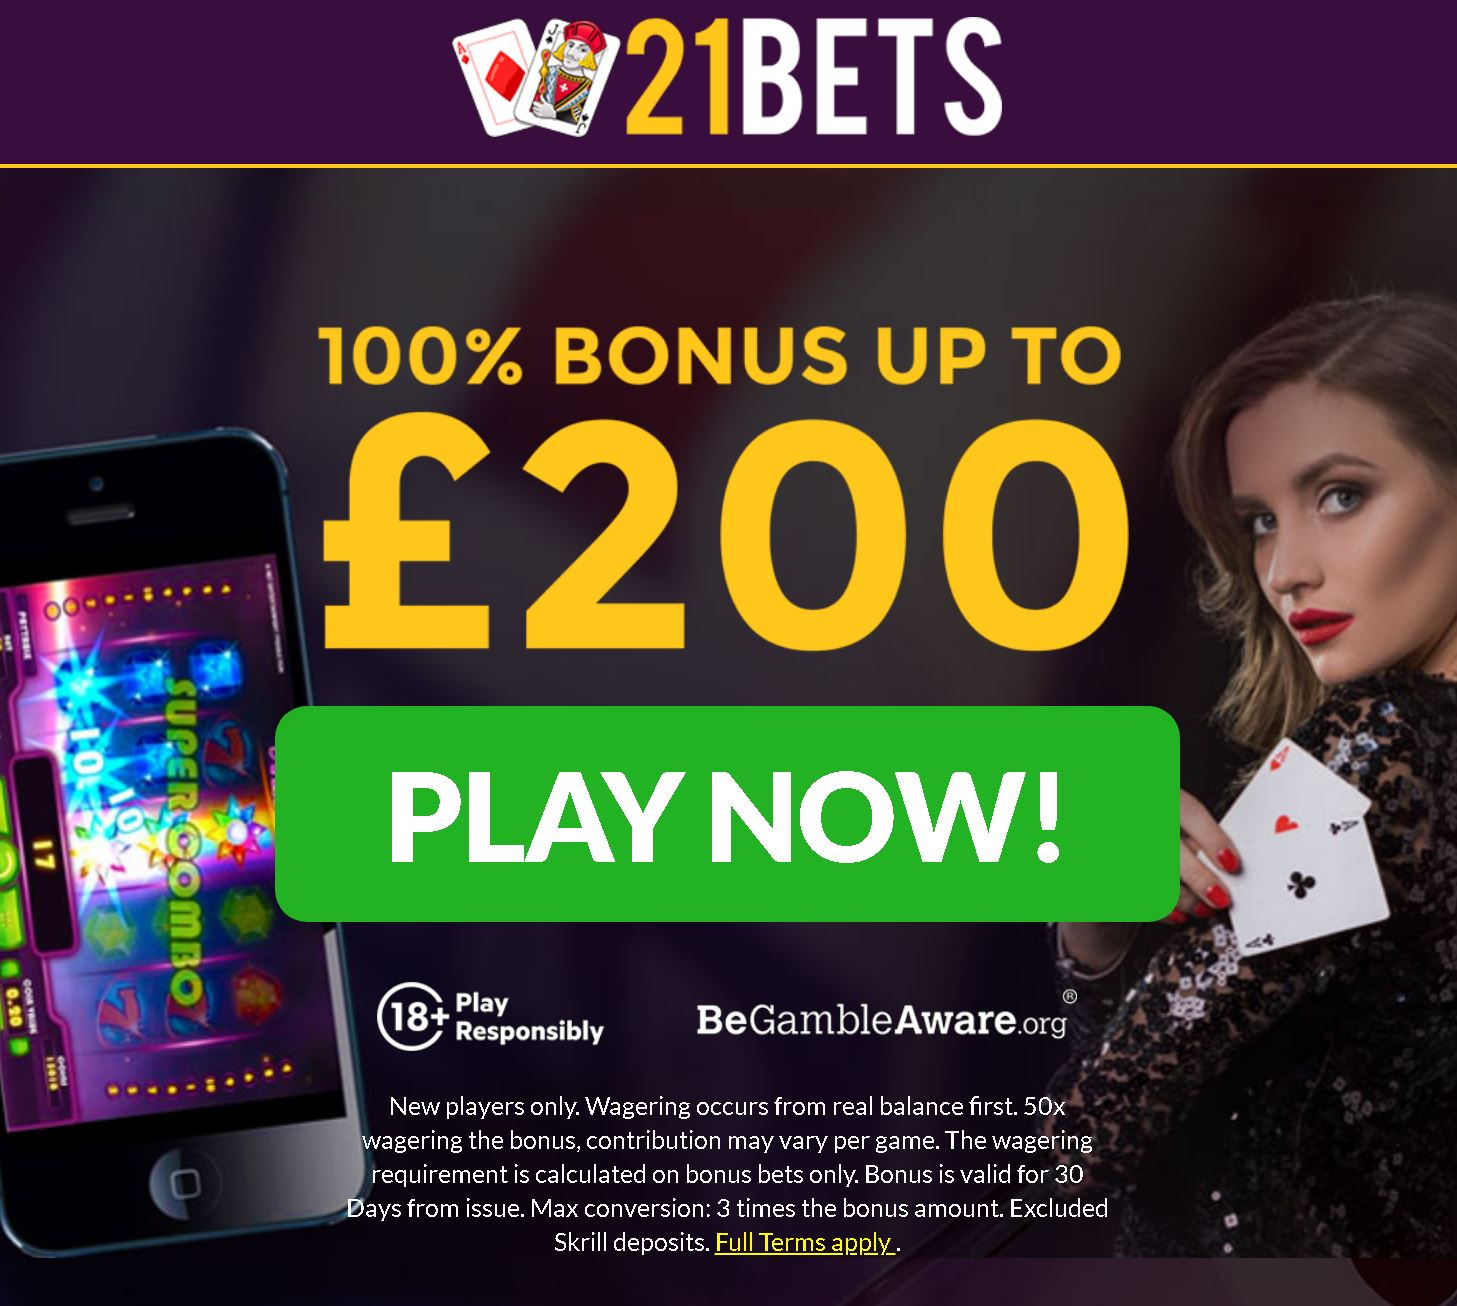 21Bets Casino welcome offer